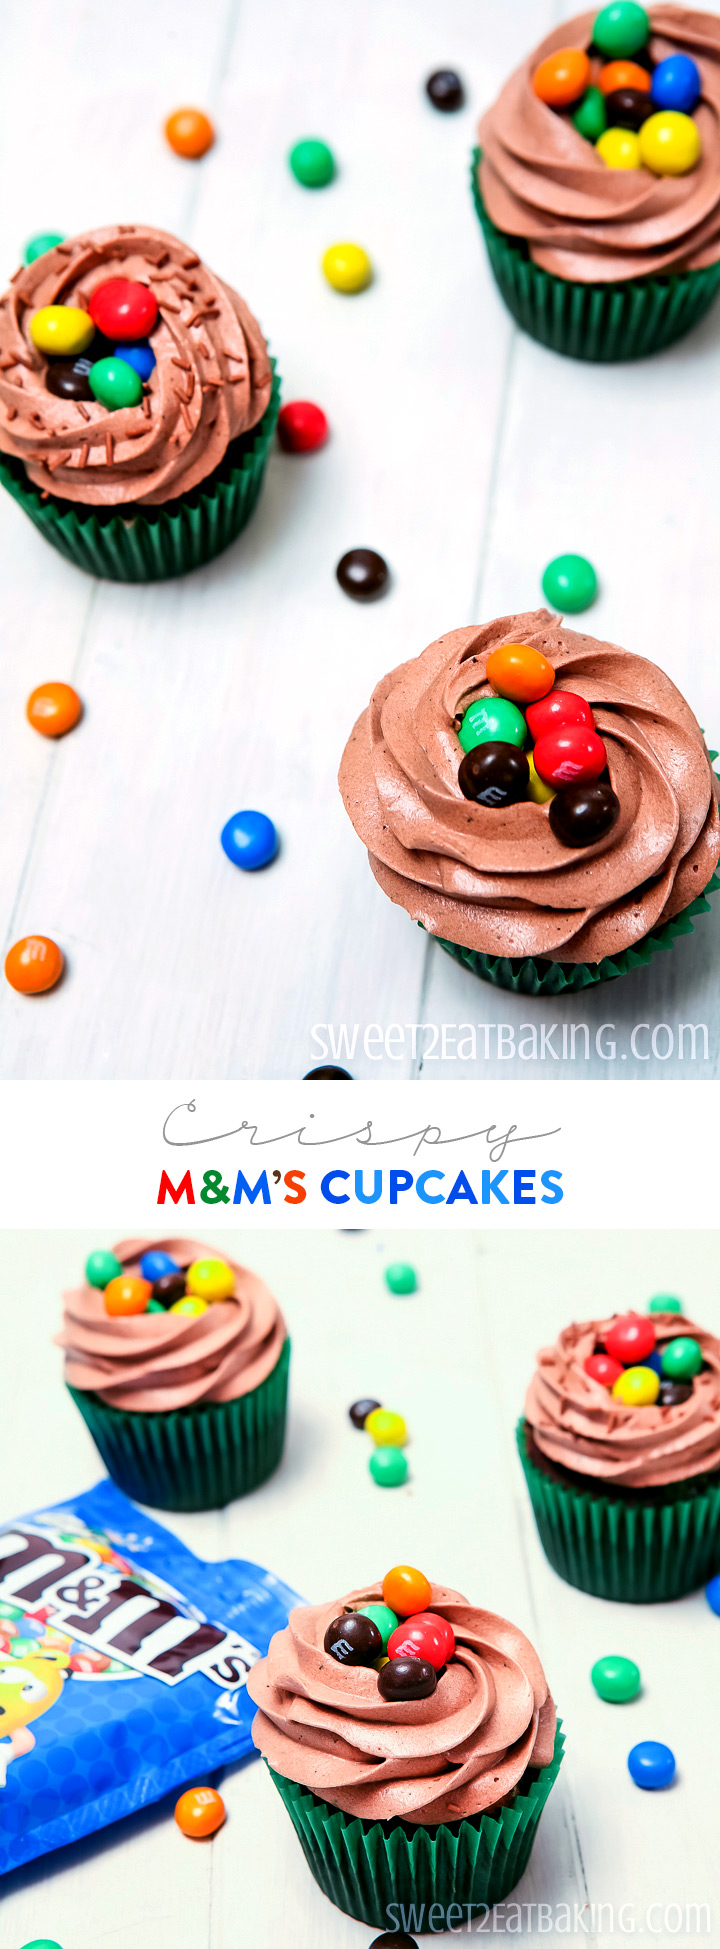 Crispy M&M's Cupcakes Recipe by Sweet2EatBaking.com